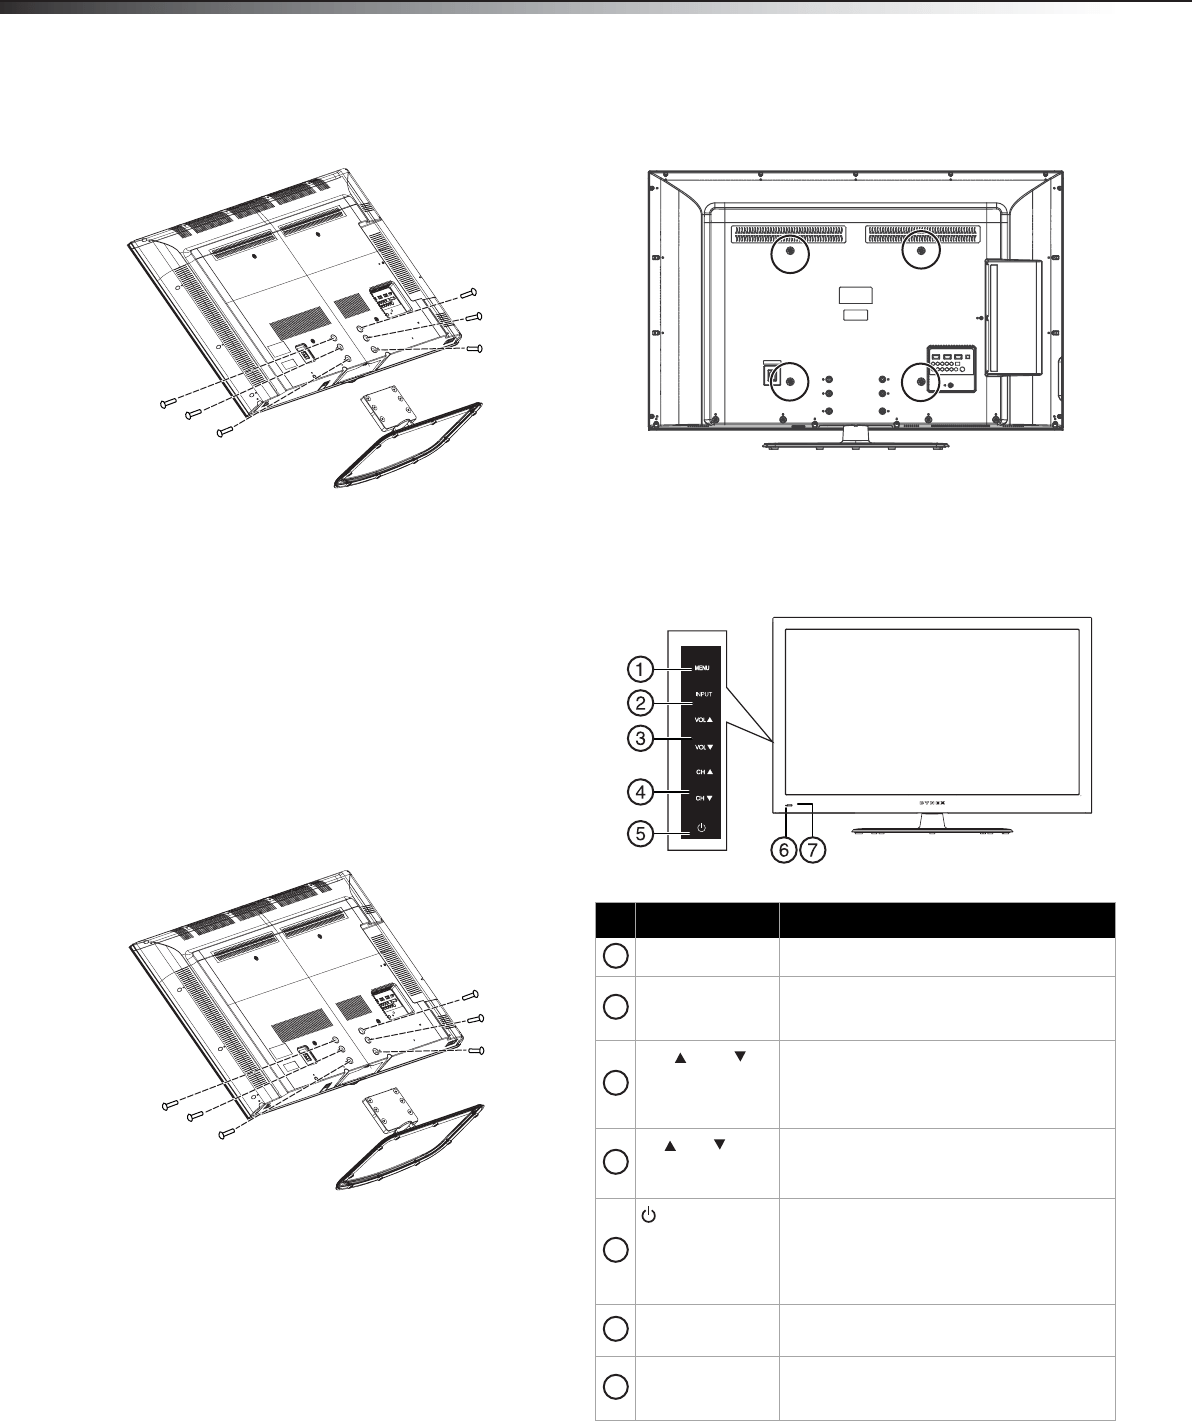 Page 8 of Dynex Flat Panel Television DX-55L150A11 User